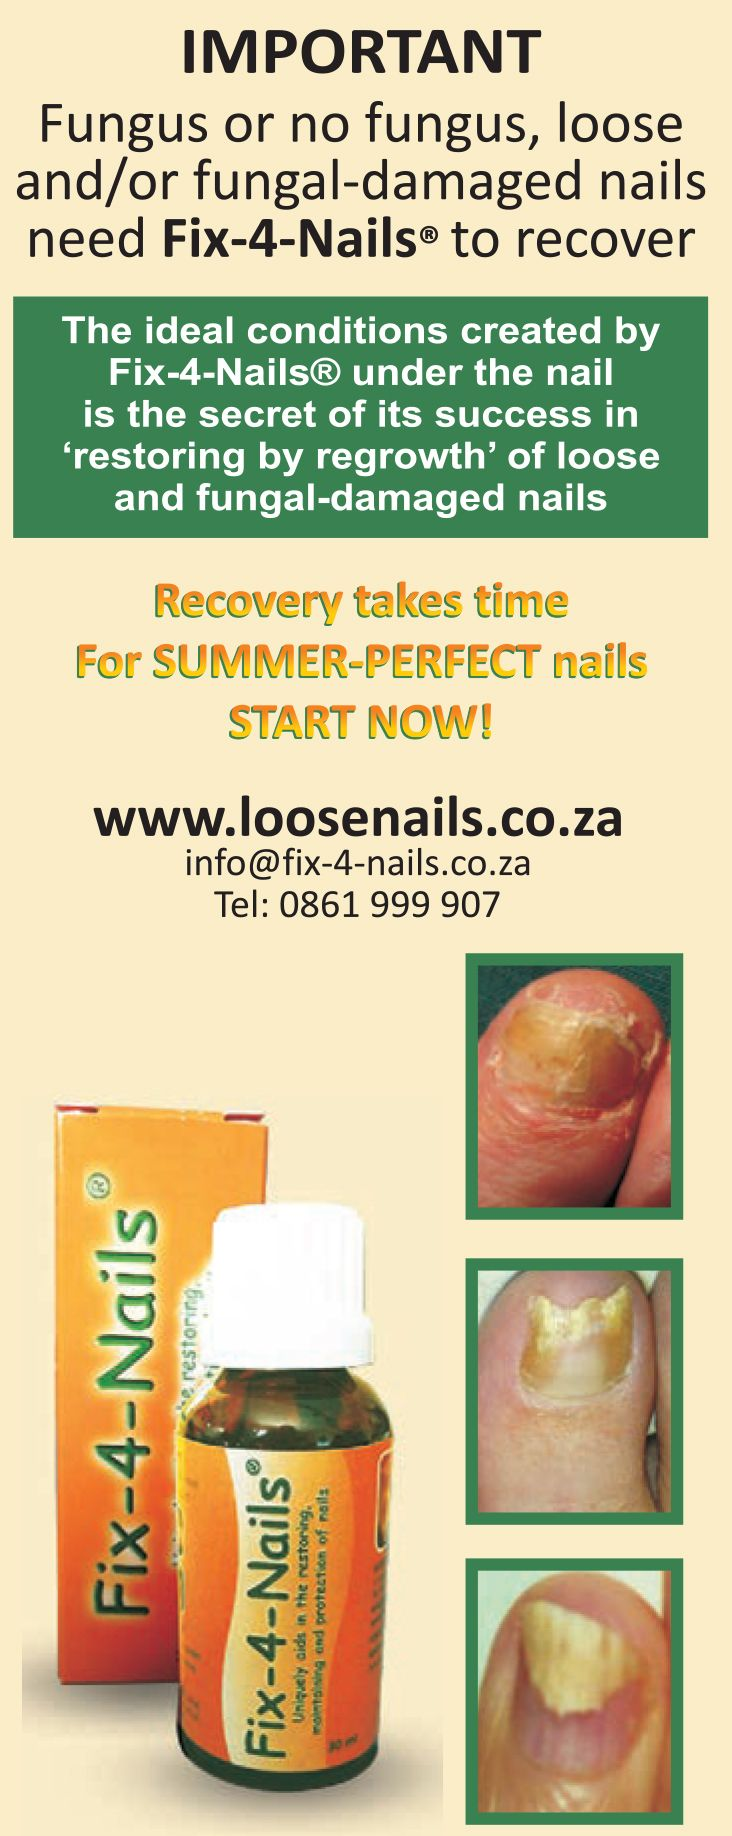 "Fix-4-Nails  The ideal conditions created by Fix-4-Nails under the nail is the secret for success in ""restoring by regrowth"" of loose and fungal-damaged nails.  Recovery takes time for Summer-perfect nails, START NOW! www.loosenails.co.za"